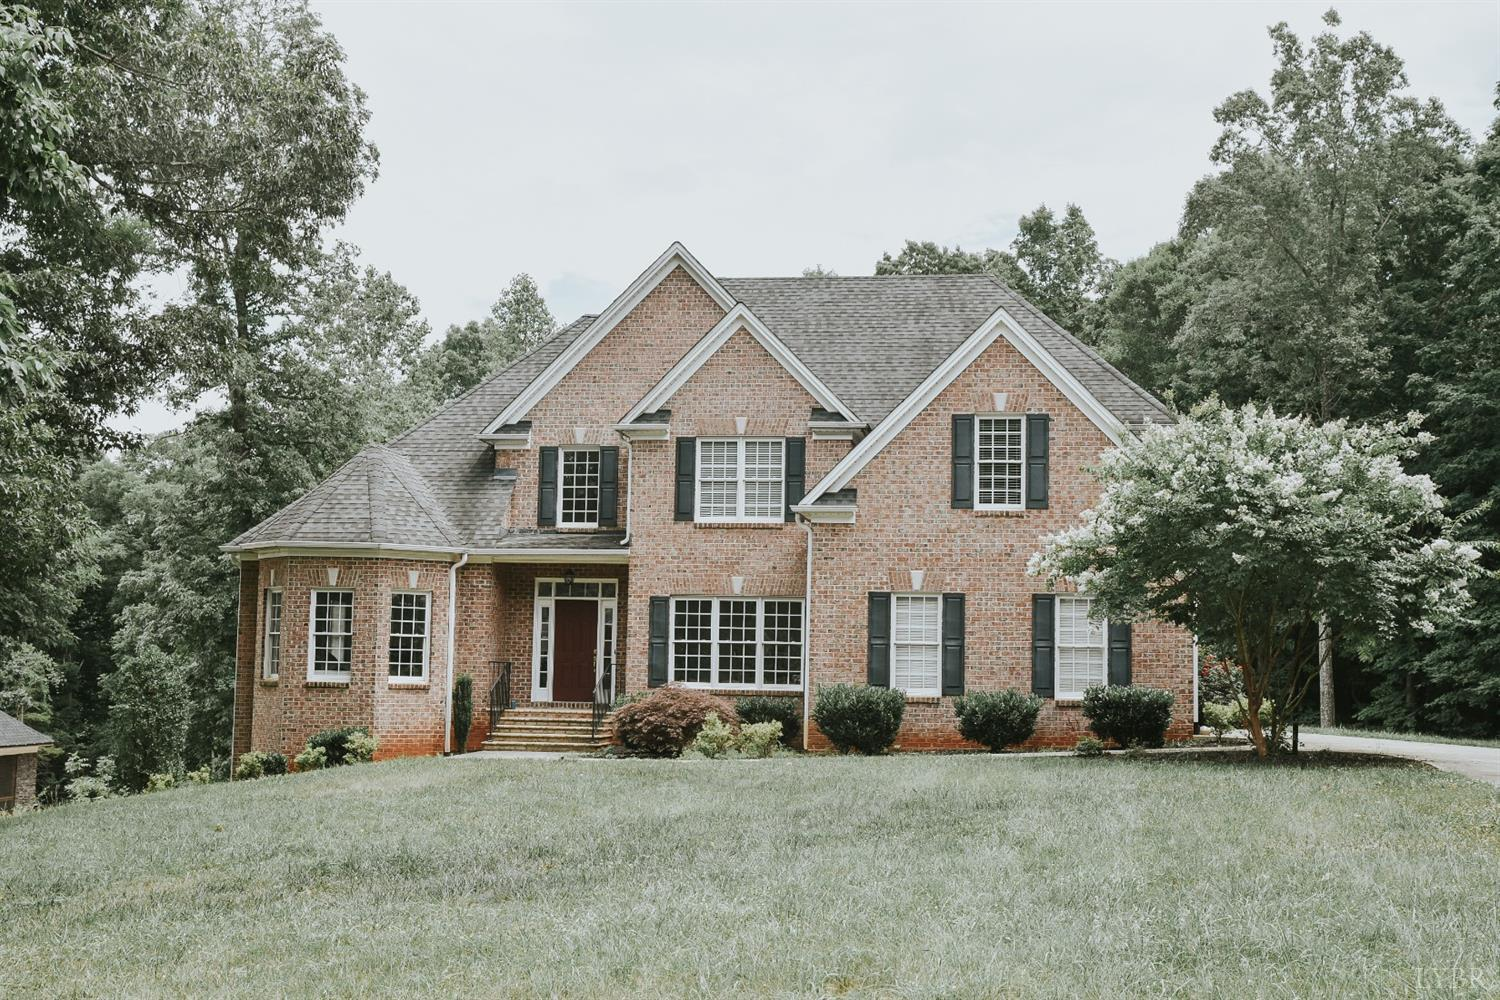 4 bed / 3 baths Home in Forest for $425,900